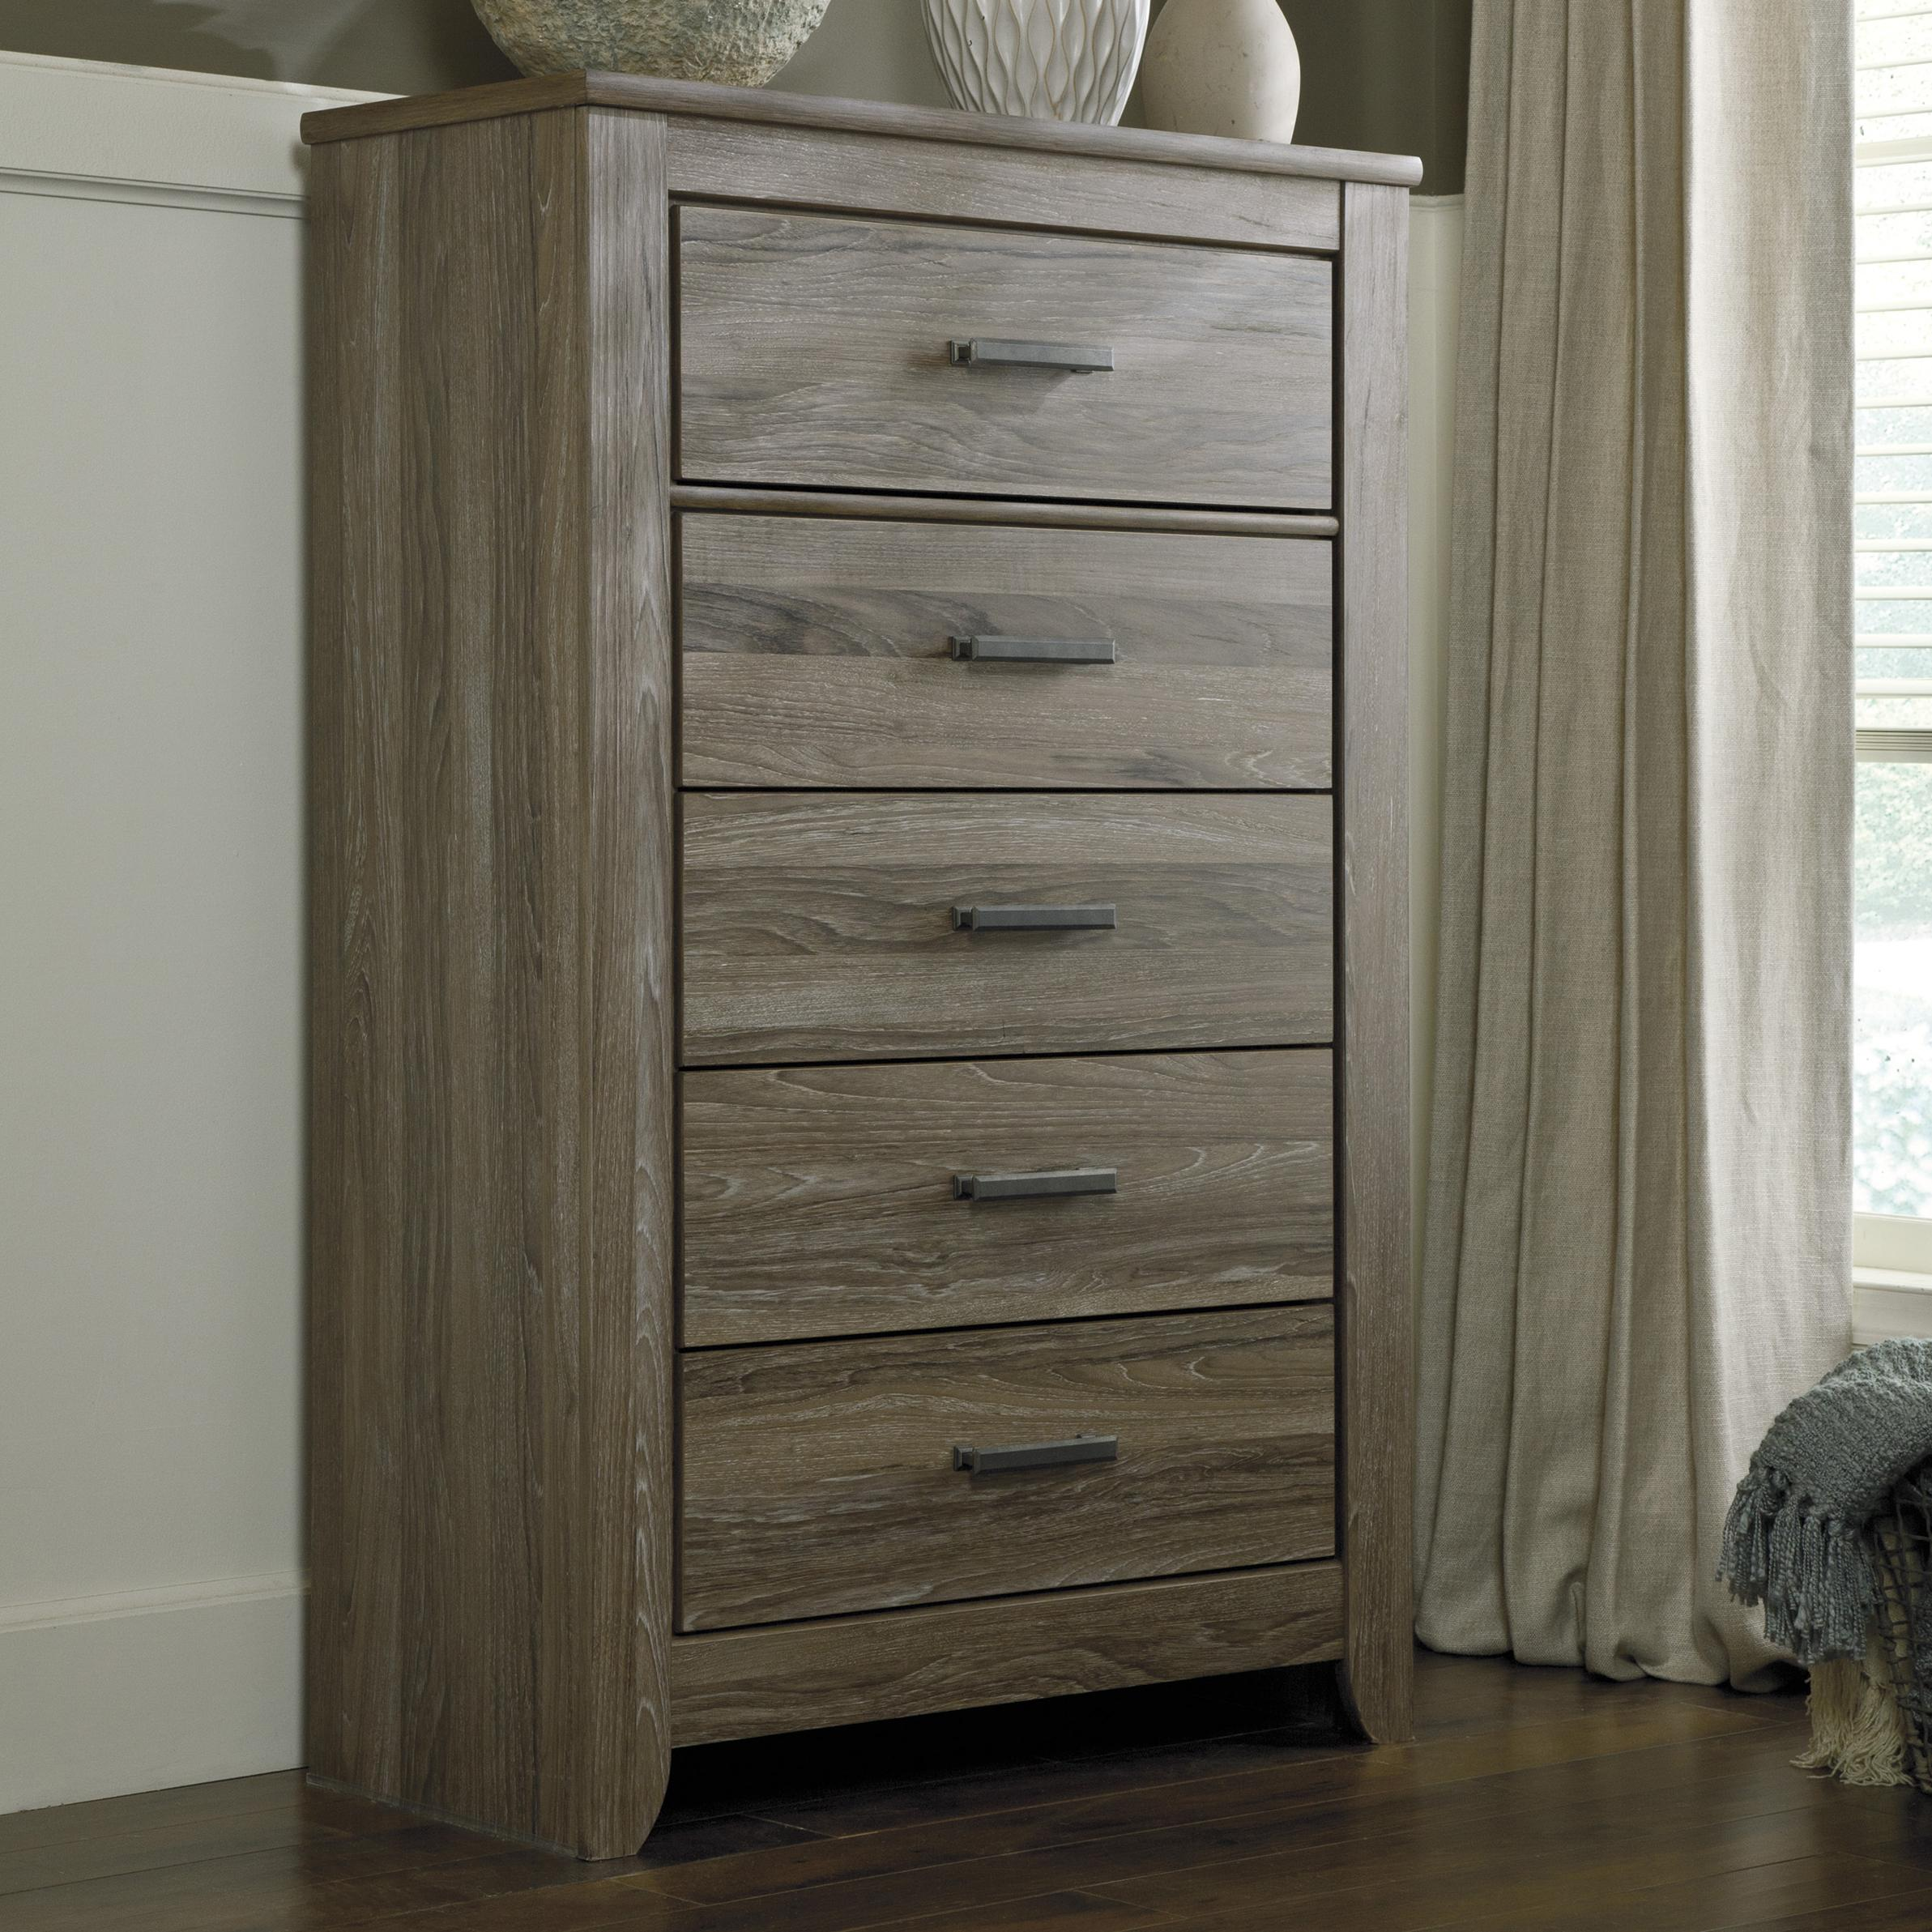 Bedroom Furniture Online Canada Barnwood Rustic 5 Drawer Chest By Styleline At Efo Furniture Outlet